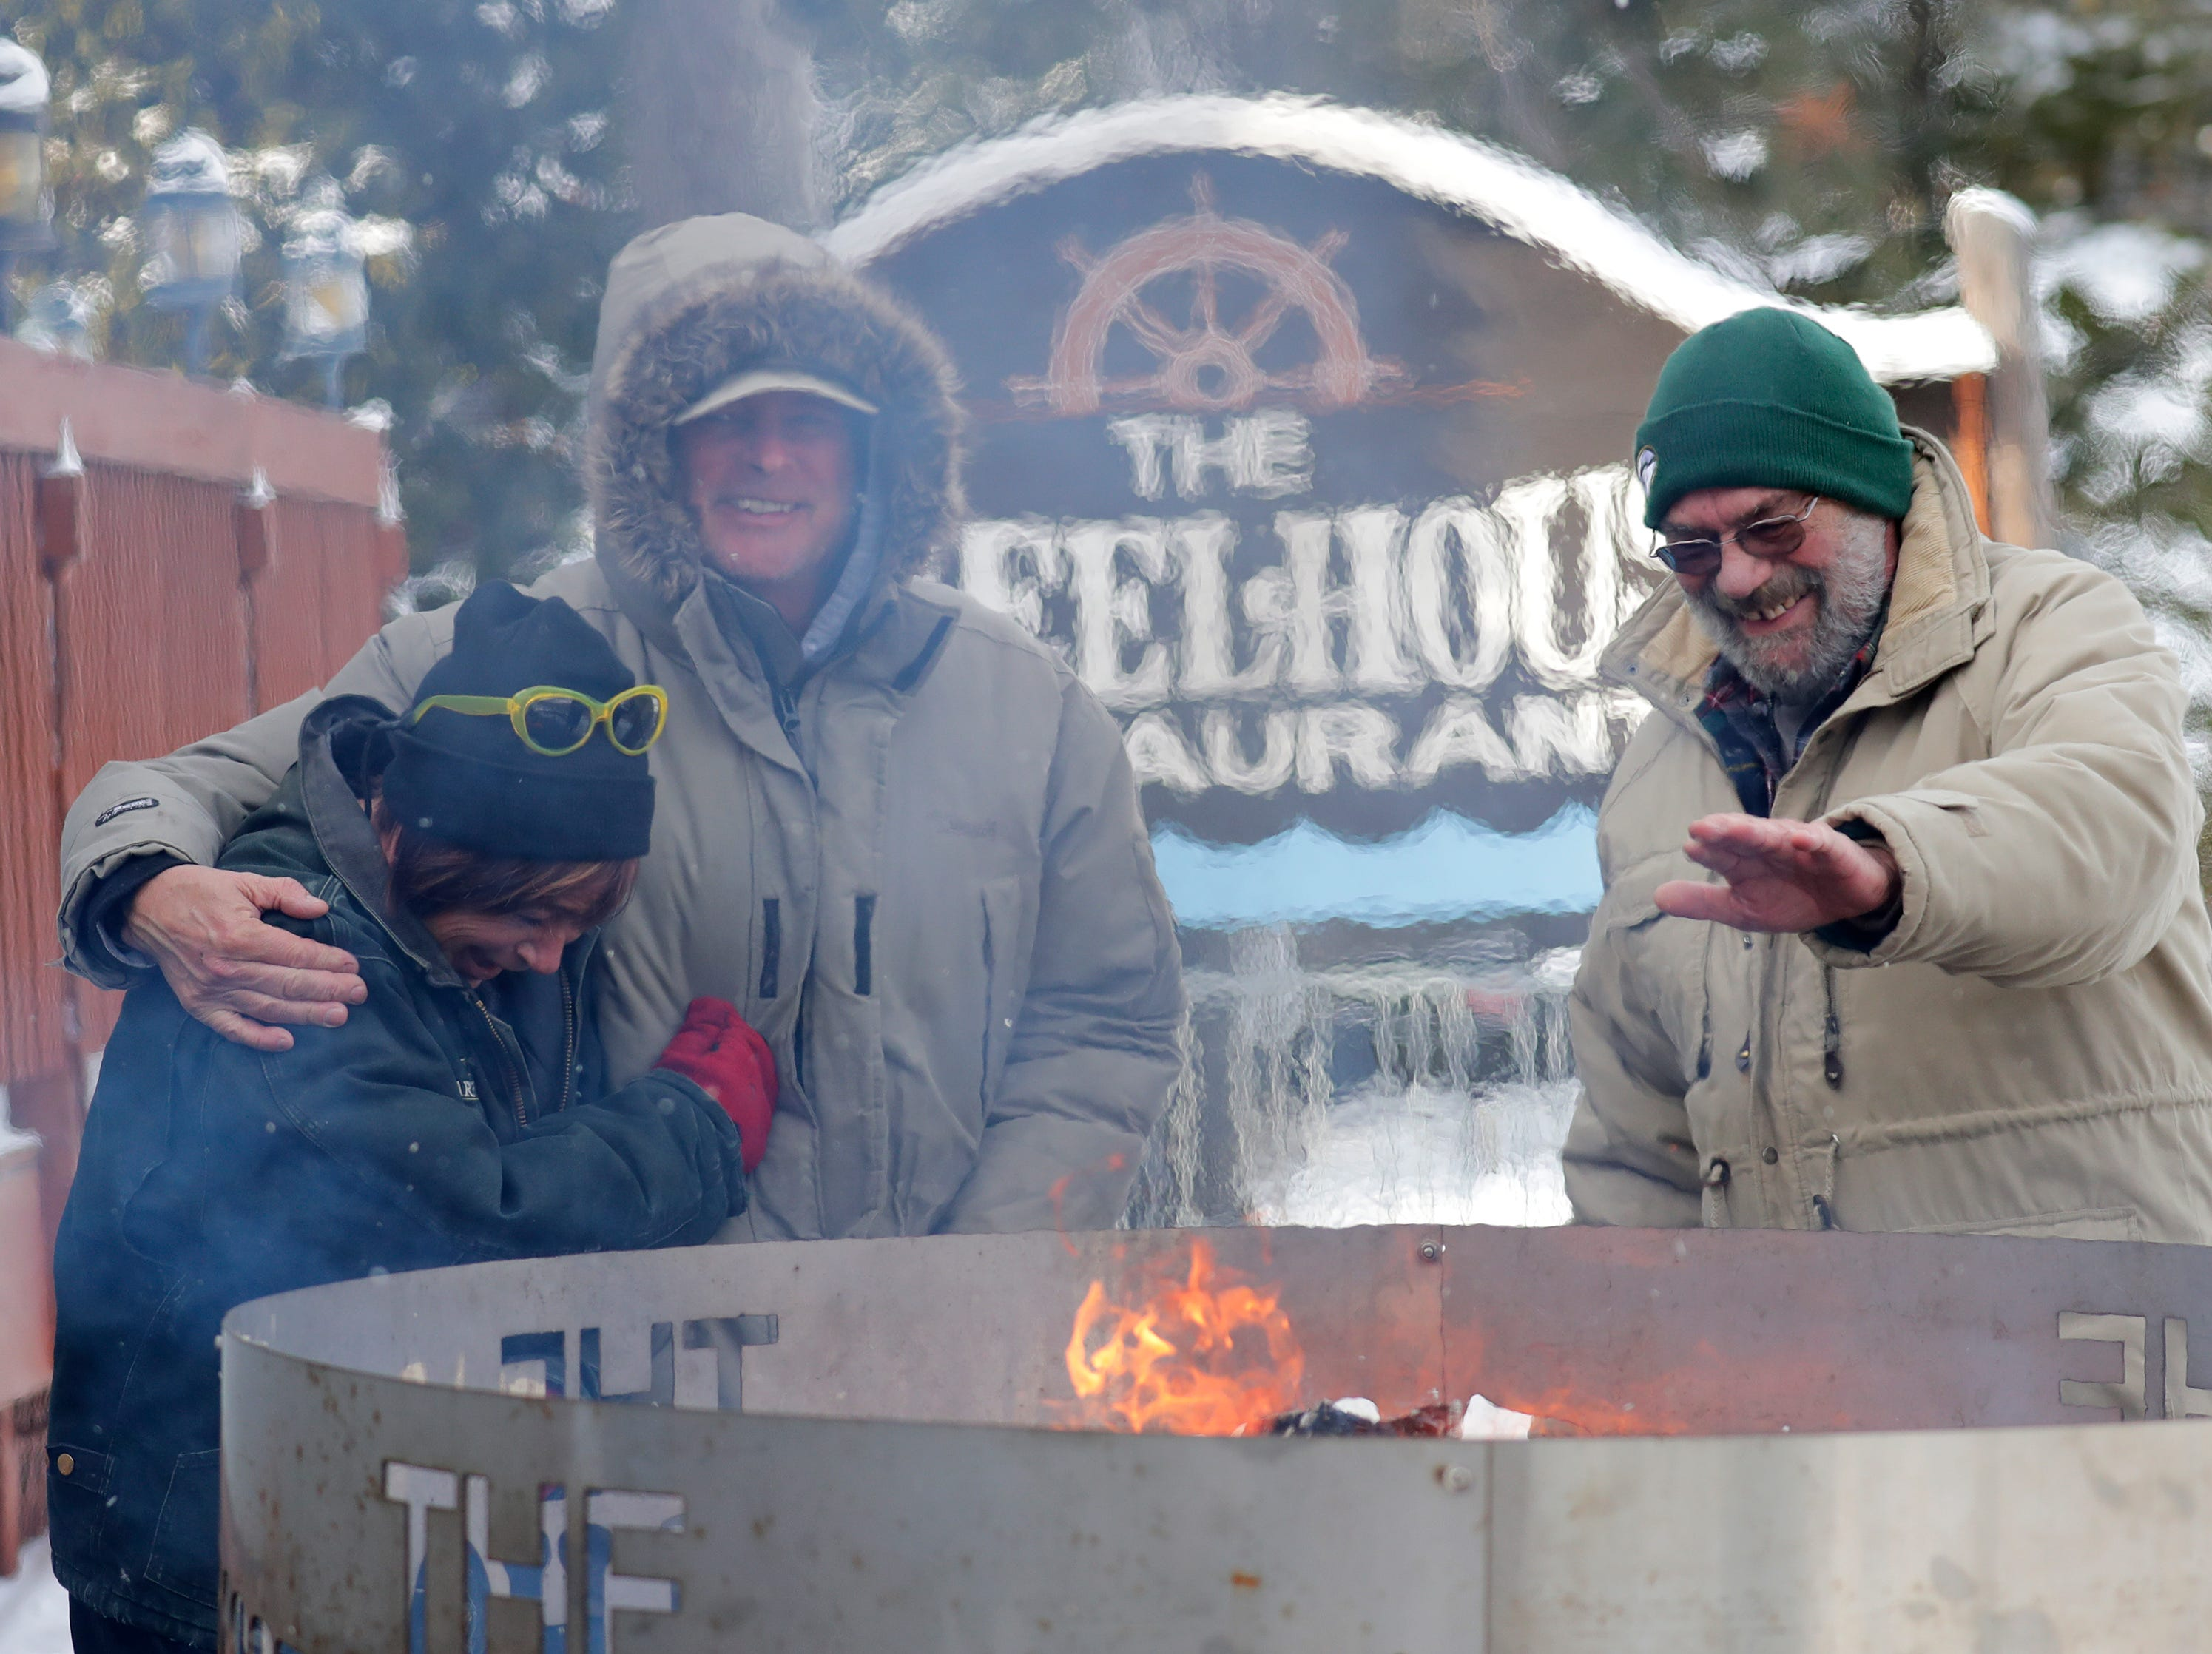 Tammy Hoeft, left, Bob Faulks and Walter Moore, right, try to stay warm outside of The Wheelhouse Restaurant during the Polar Bear Plunge Tuesday, January 1, 2019, at Becker Marine on Lime Kiln Lake in Waupaca, Wis. All three are from Waupaca.